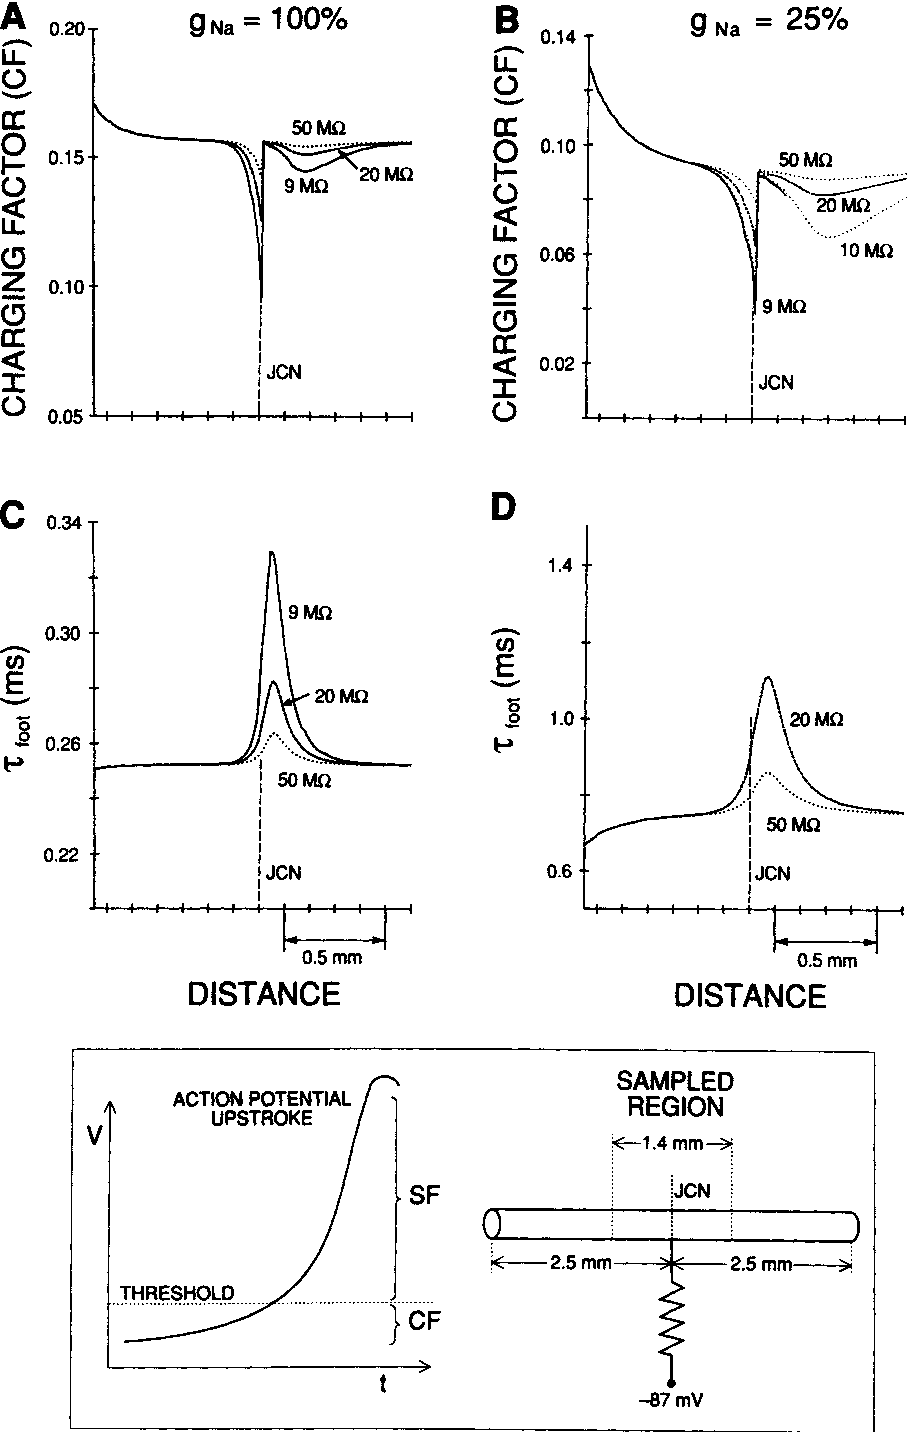 Directional Characteristics Of Action Potential Propagation In